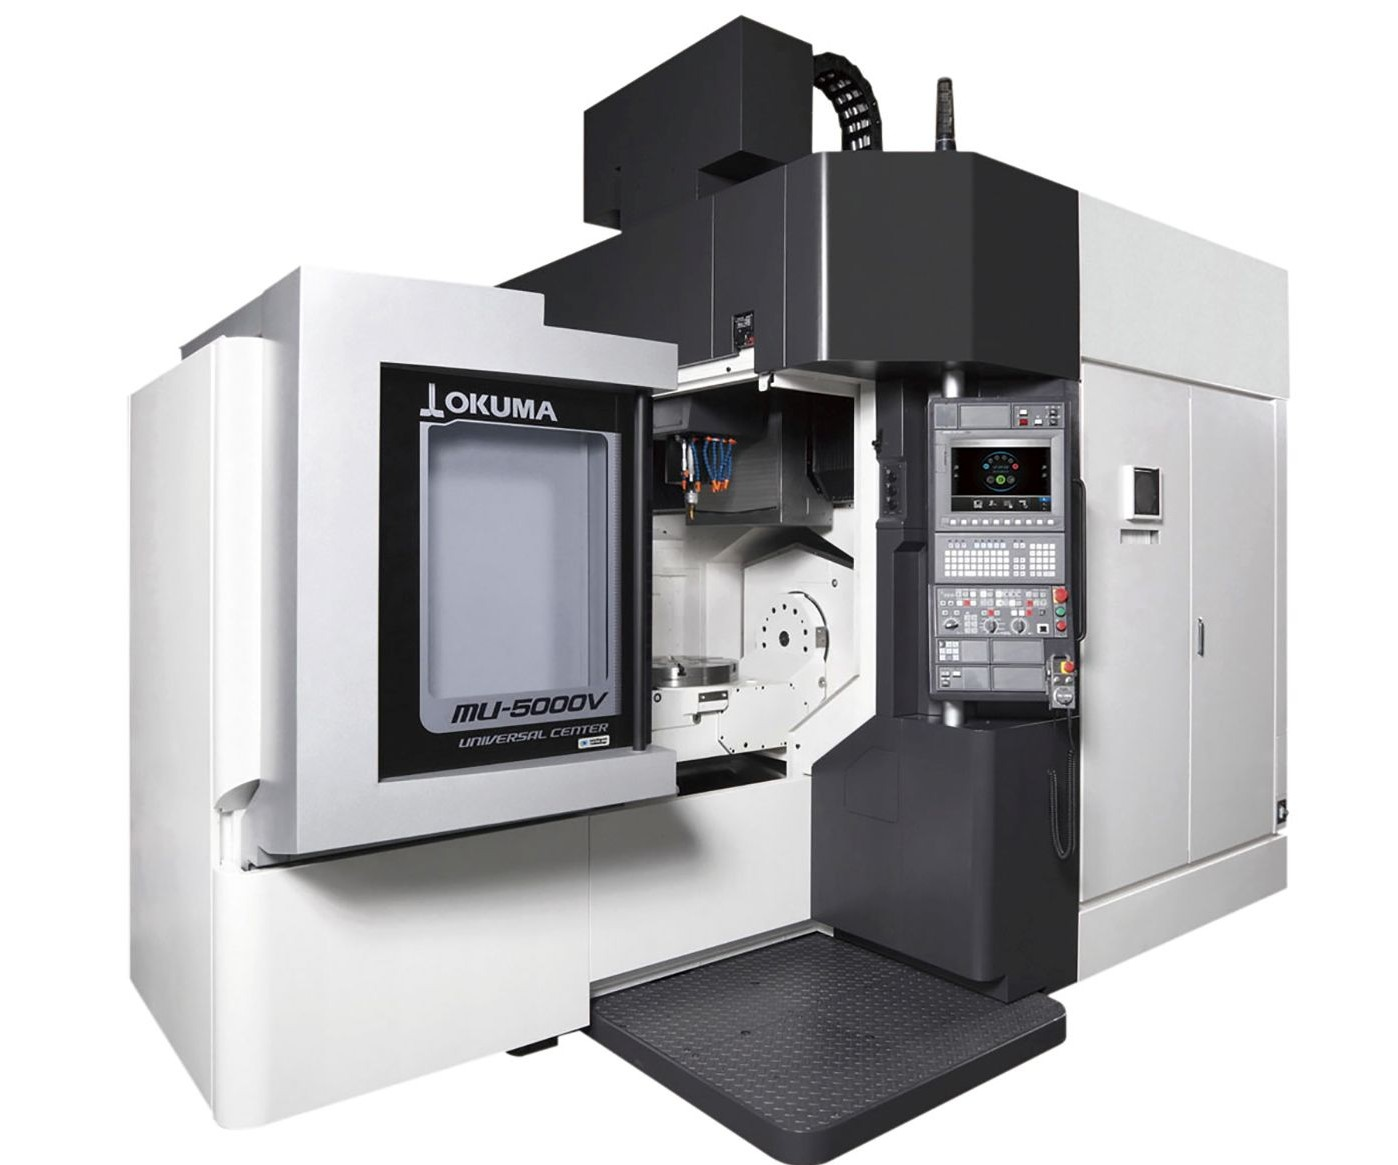 Okuma MU-5000V five-axis vertical machining center